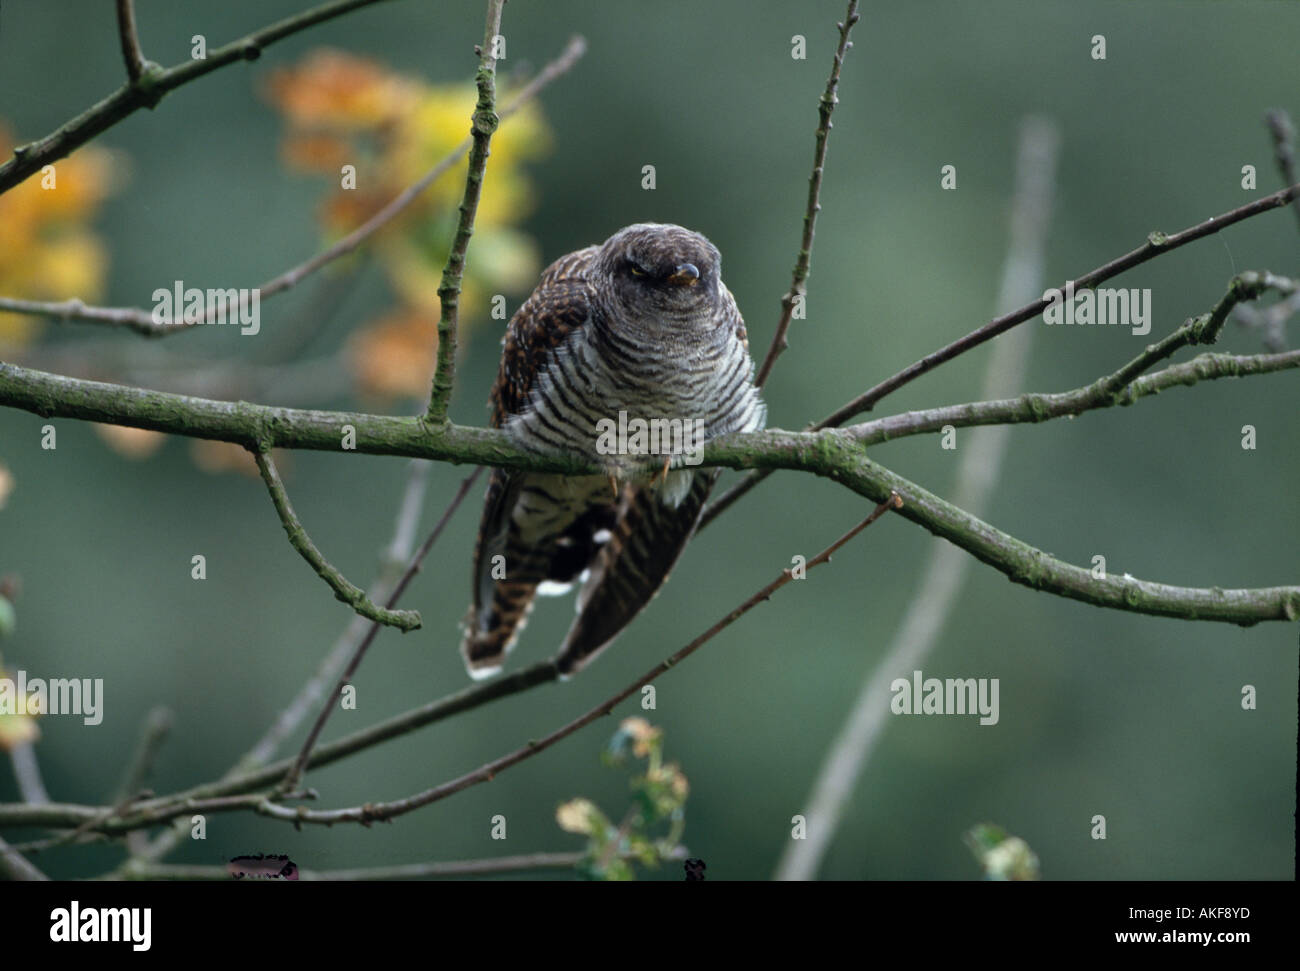 Cuckoo Cuculus canorus Perched front view September - Stock Image